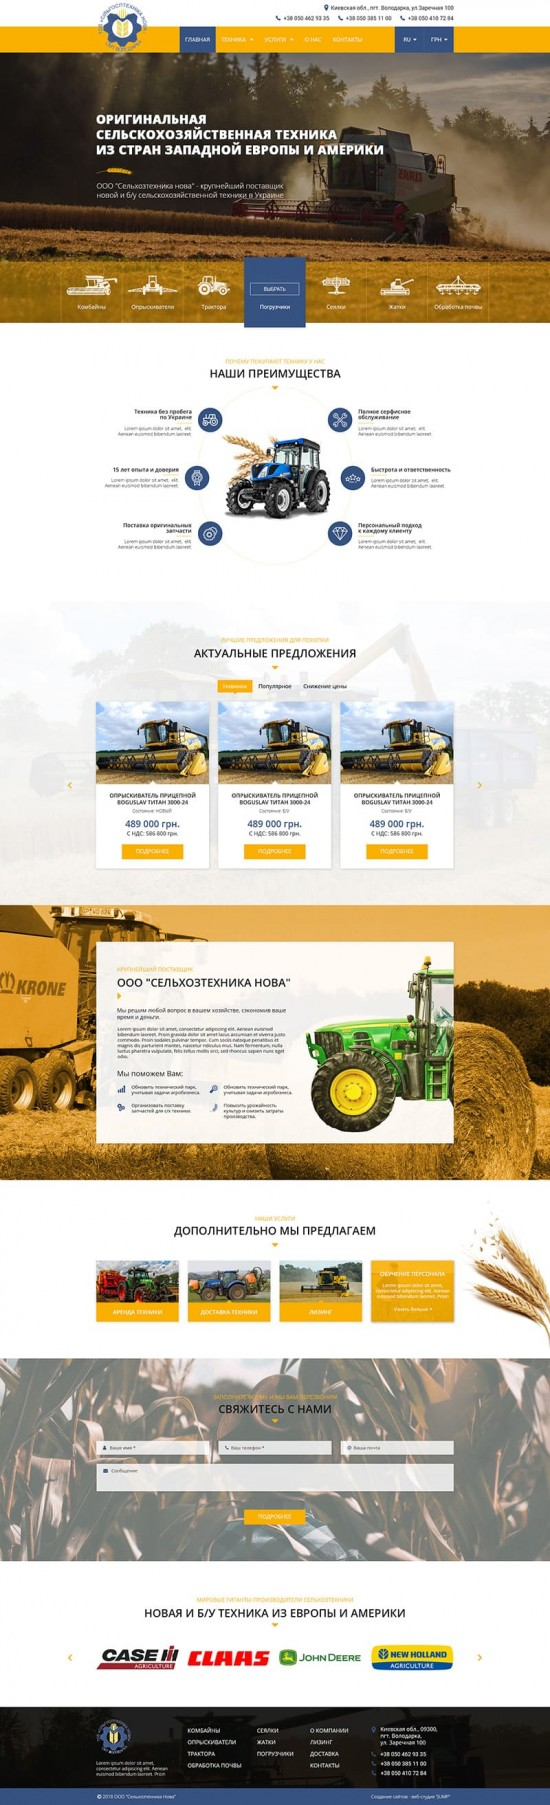 «Sgtnova» agricultural  machinery sales 2 DESCTOP - Jump.team